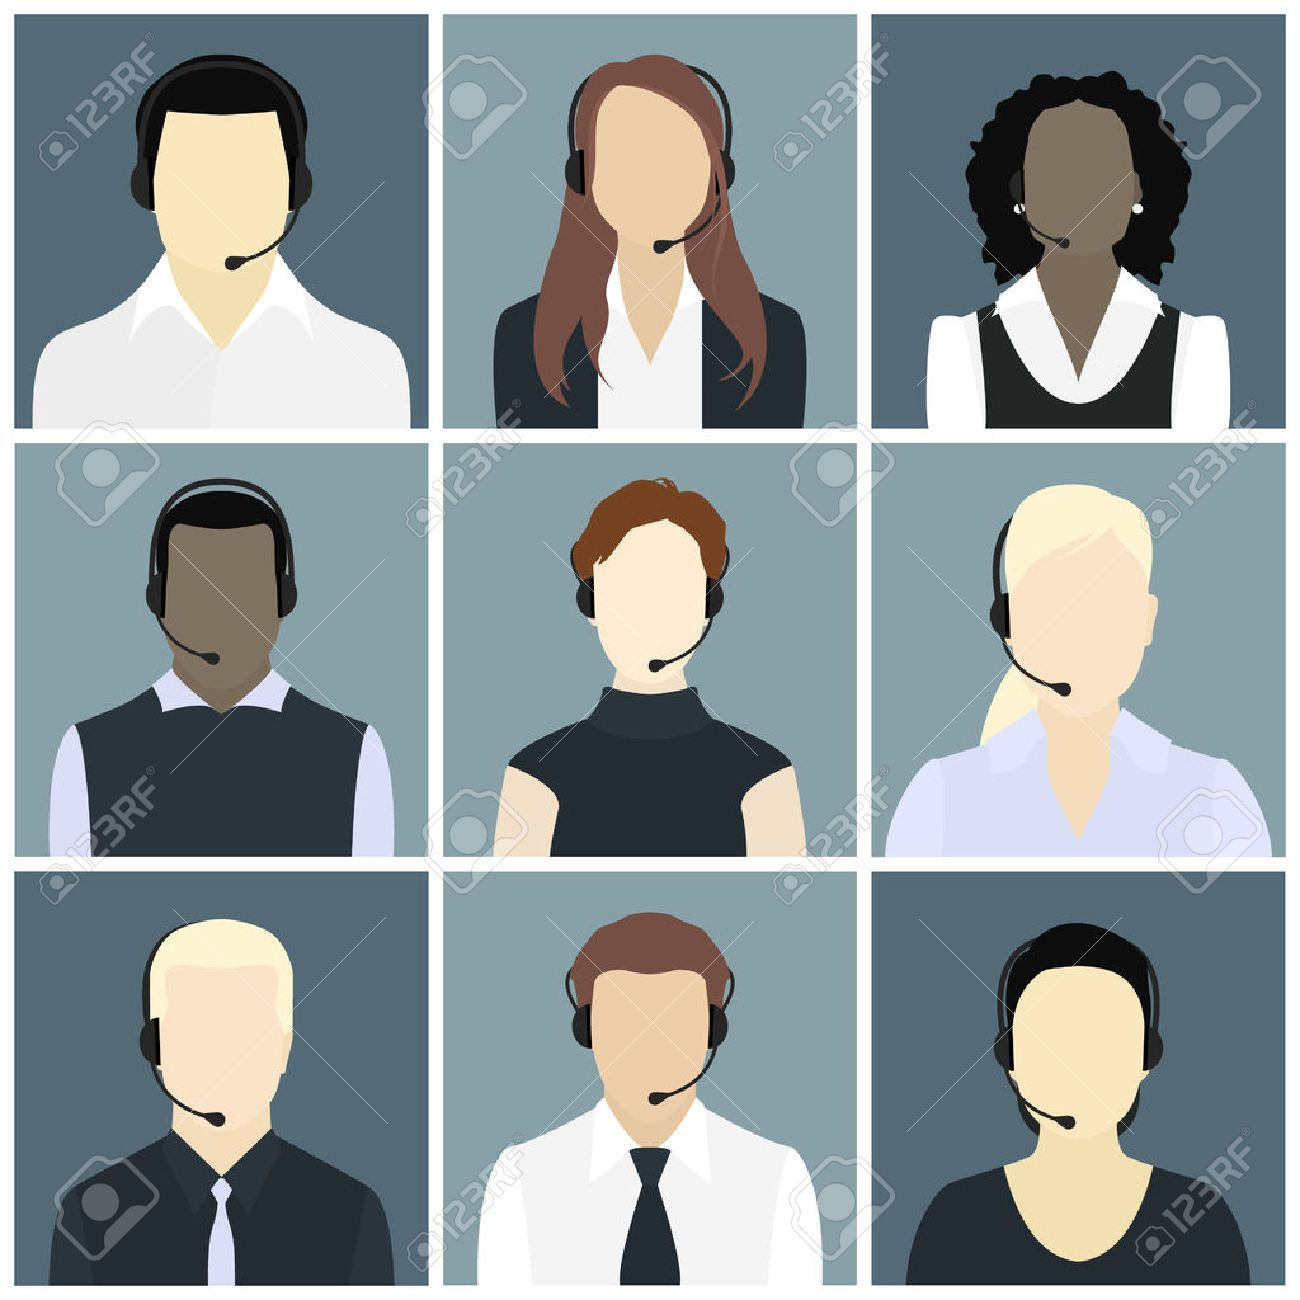 Vector icons set Male and female call center avatars in a flat style with a headset, conceptual of communication, client services, telemarketing, business - 36276697